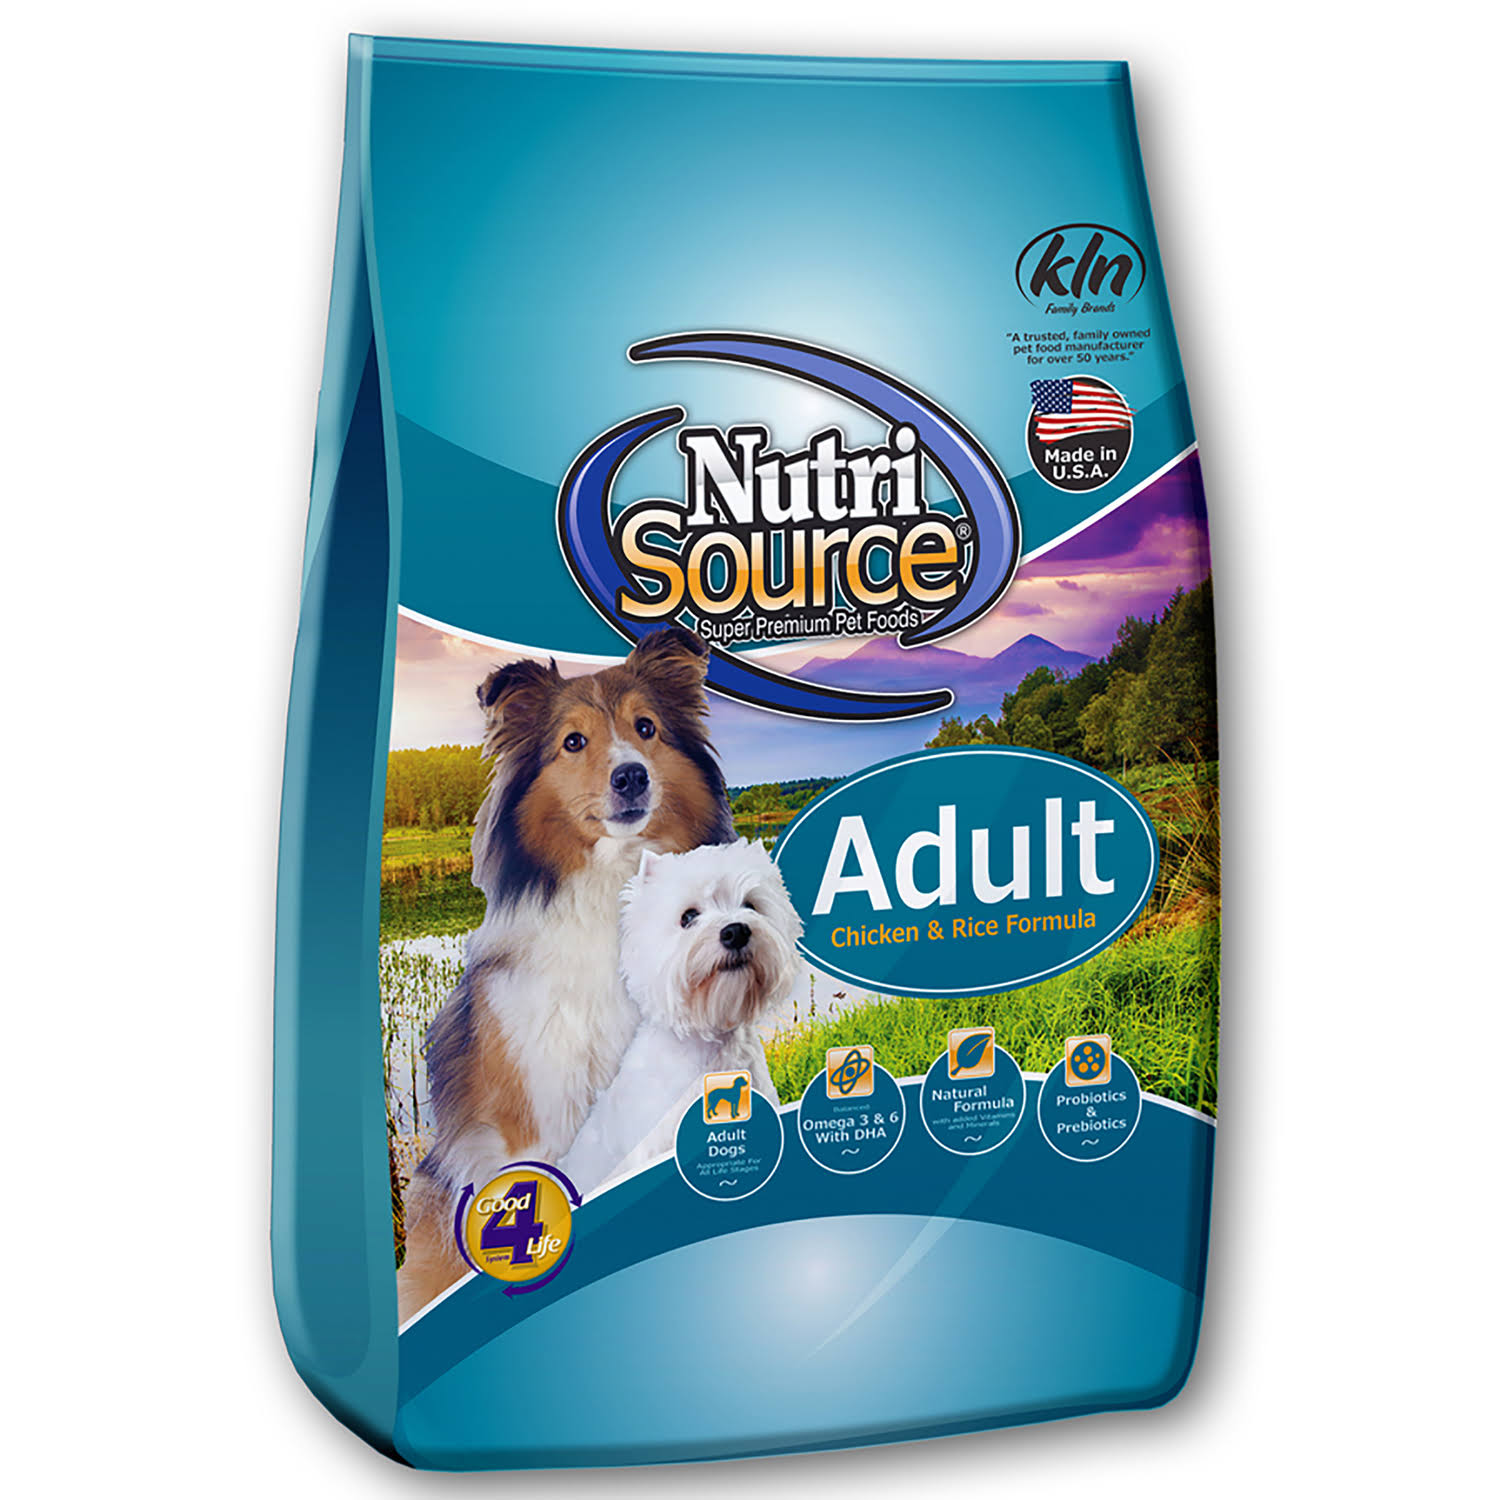 NutriSource Adult Dry Dog Food - Chicken and Rice Formula